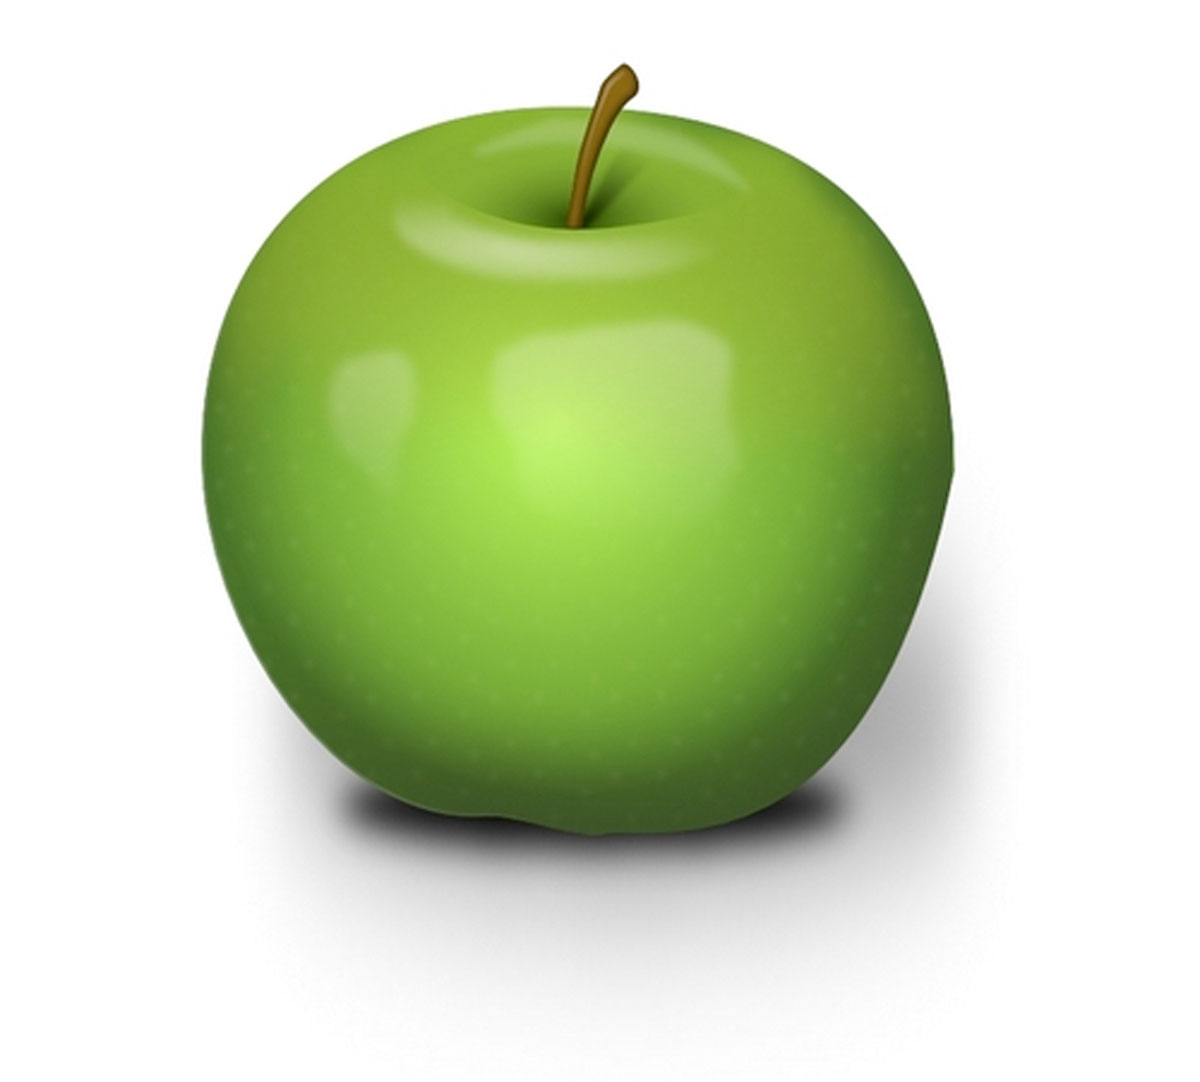 Apple clipart royalty free picture freeuse download Apple image - vector clip art online, royalty free public domain ... picture freeuse download